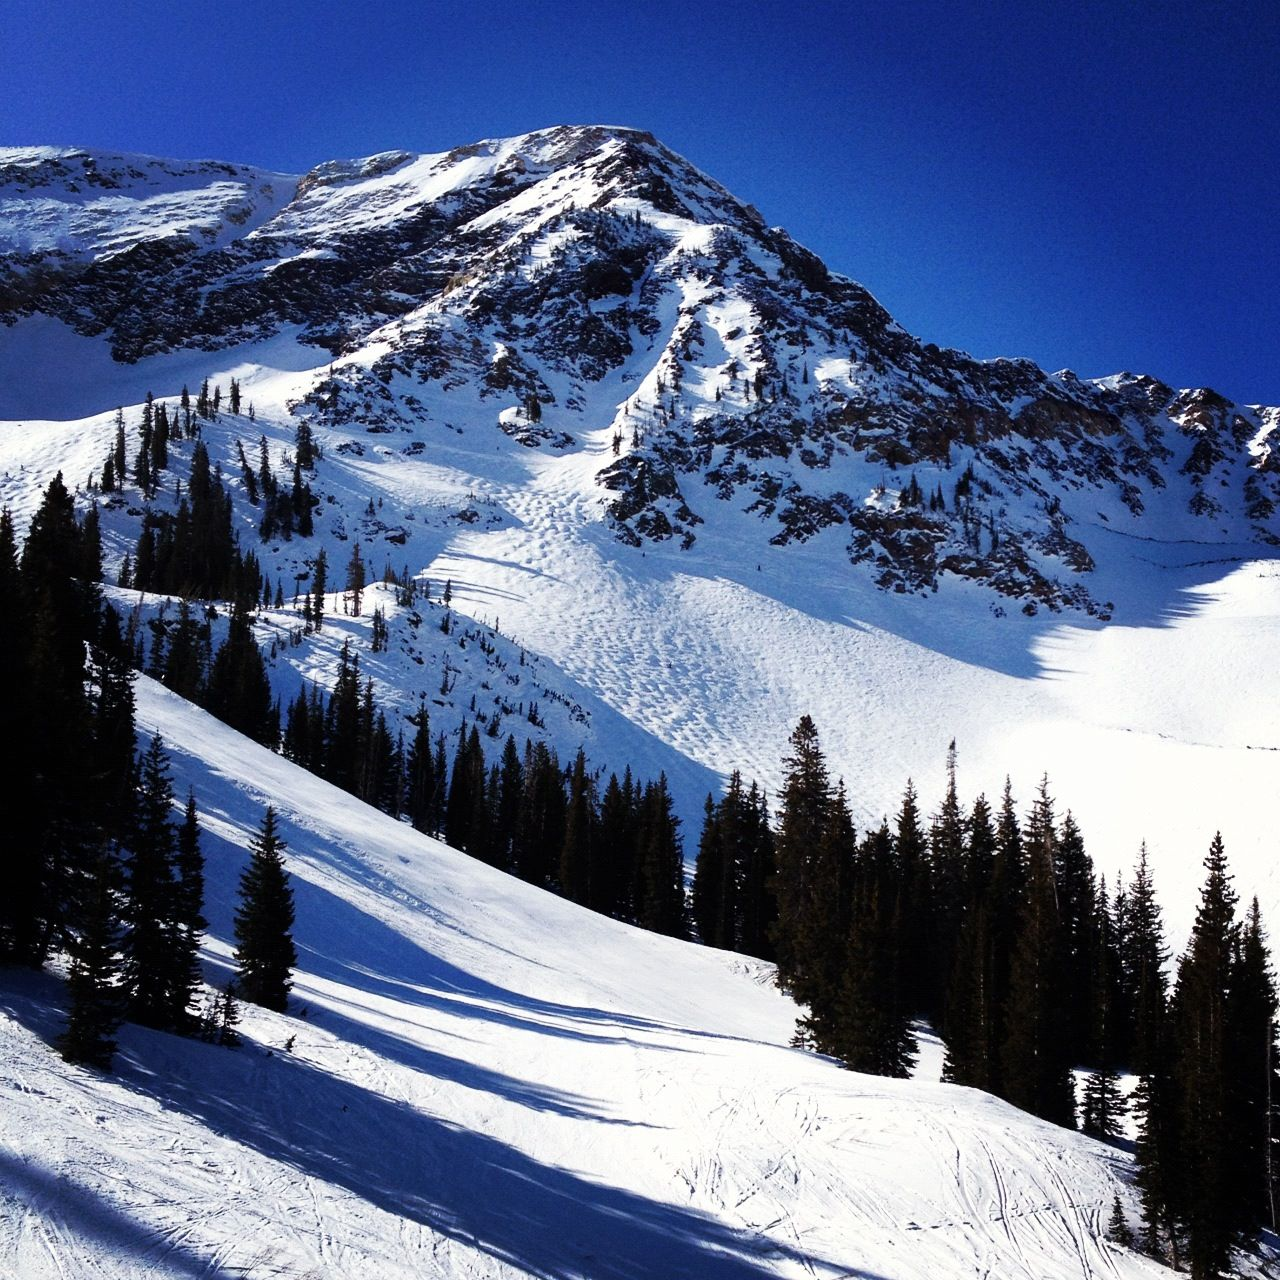 snowbird, utah - my absolute favorite ski and snowboard resort in